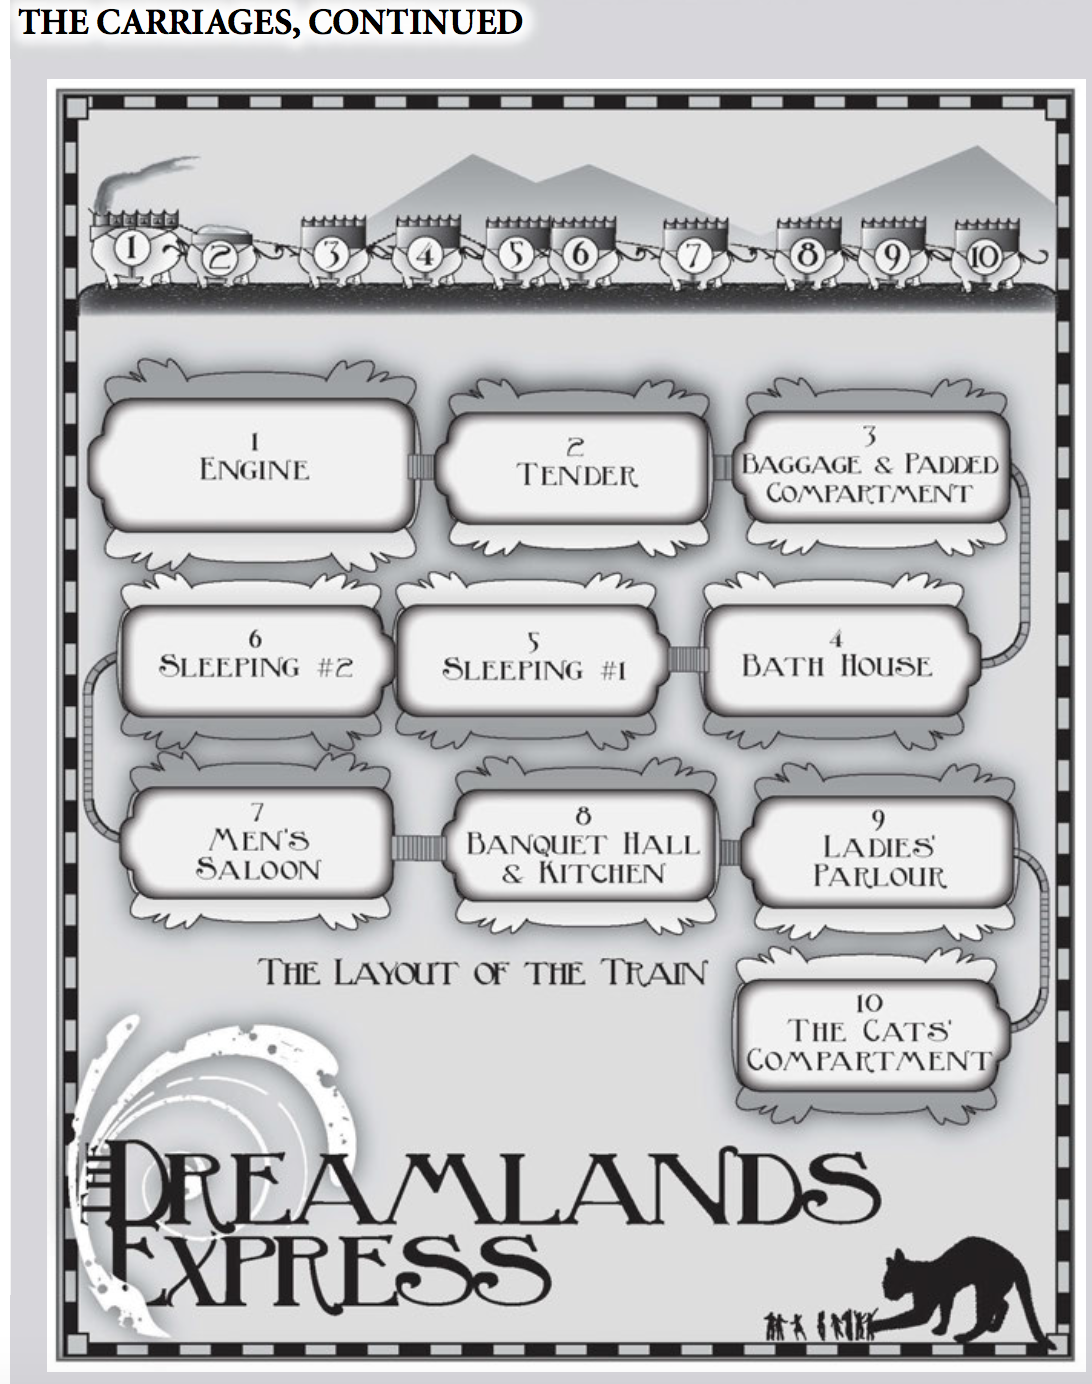 The_carriages_Dreamland_Express.png